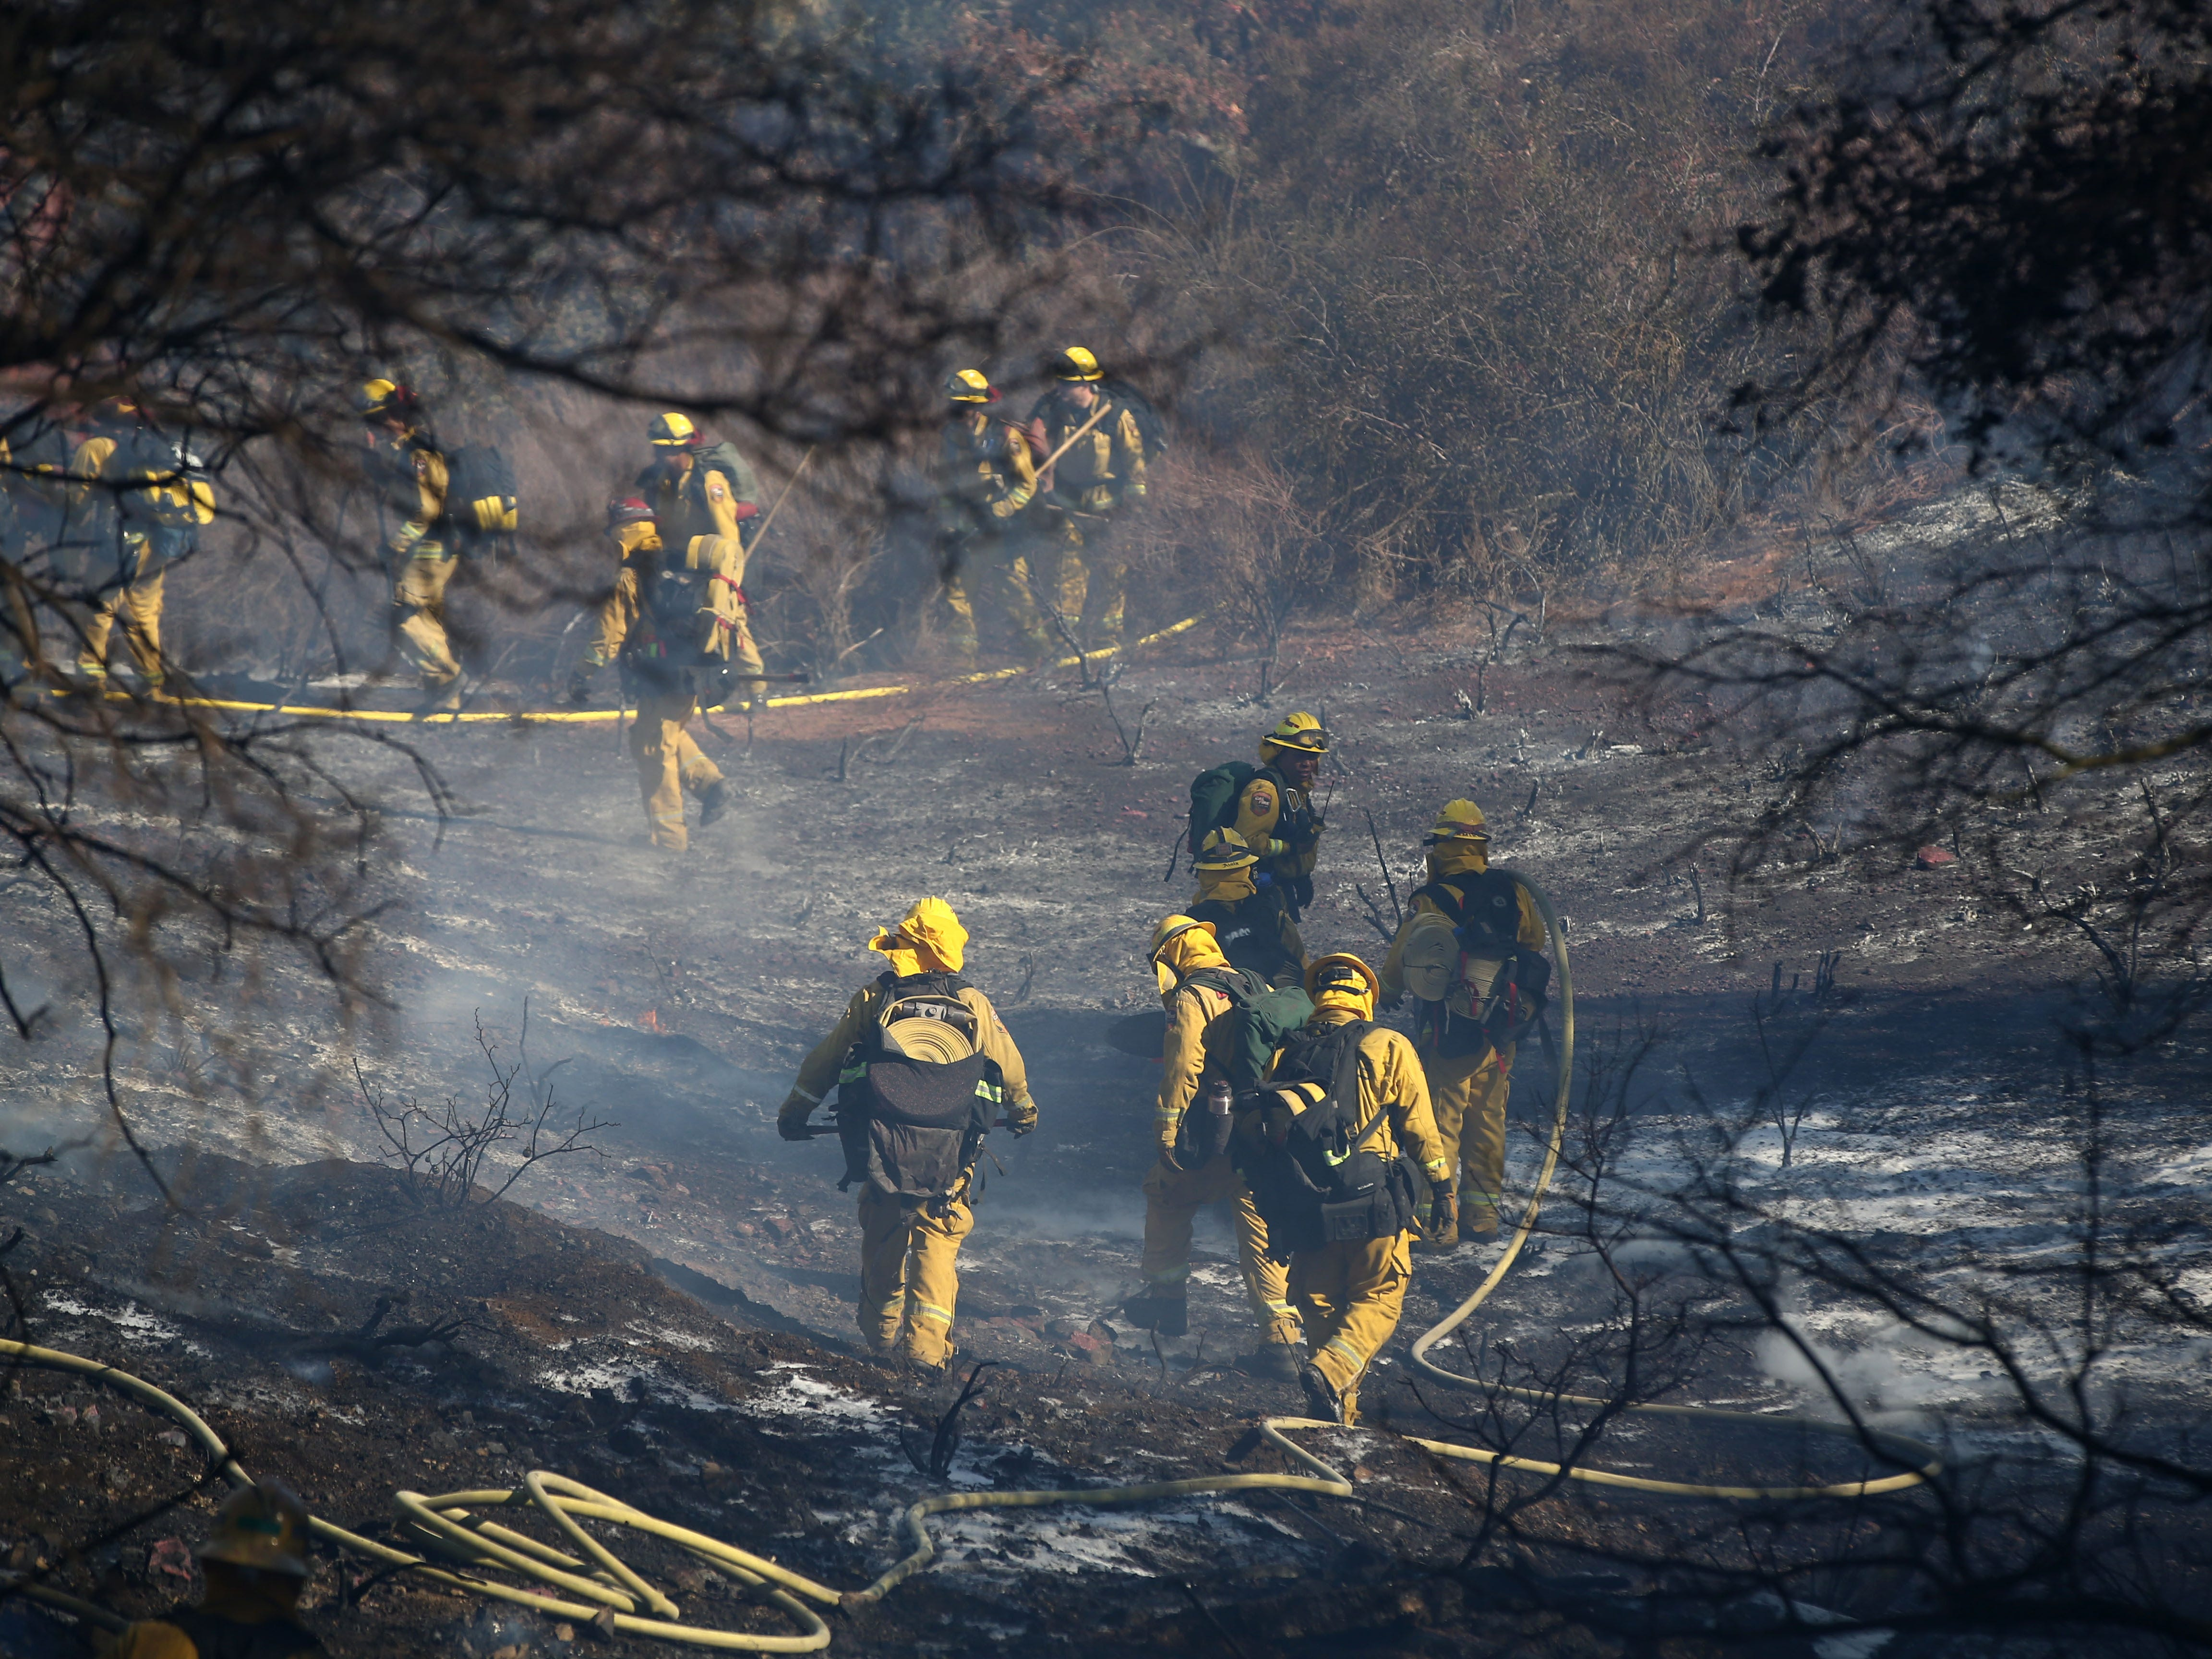 Firefighters put out a hotspot as the Hill Fire burns on Nov. 12, 2018, in Thousand Oaks, Calif. Ventura County firefighters saved all the homes in the area.